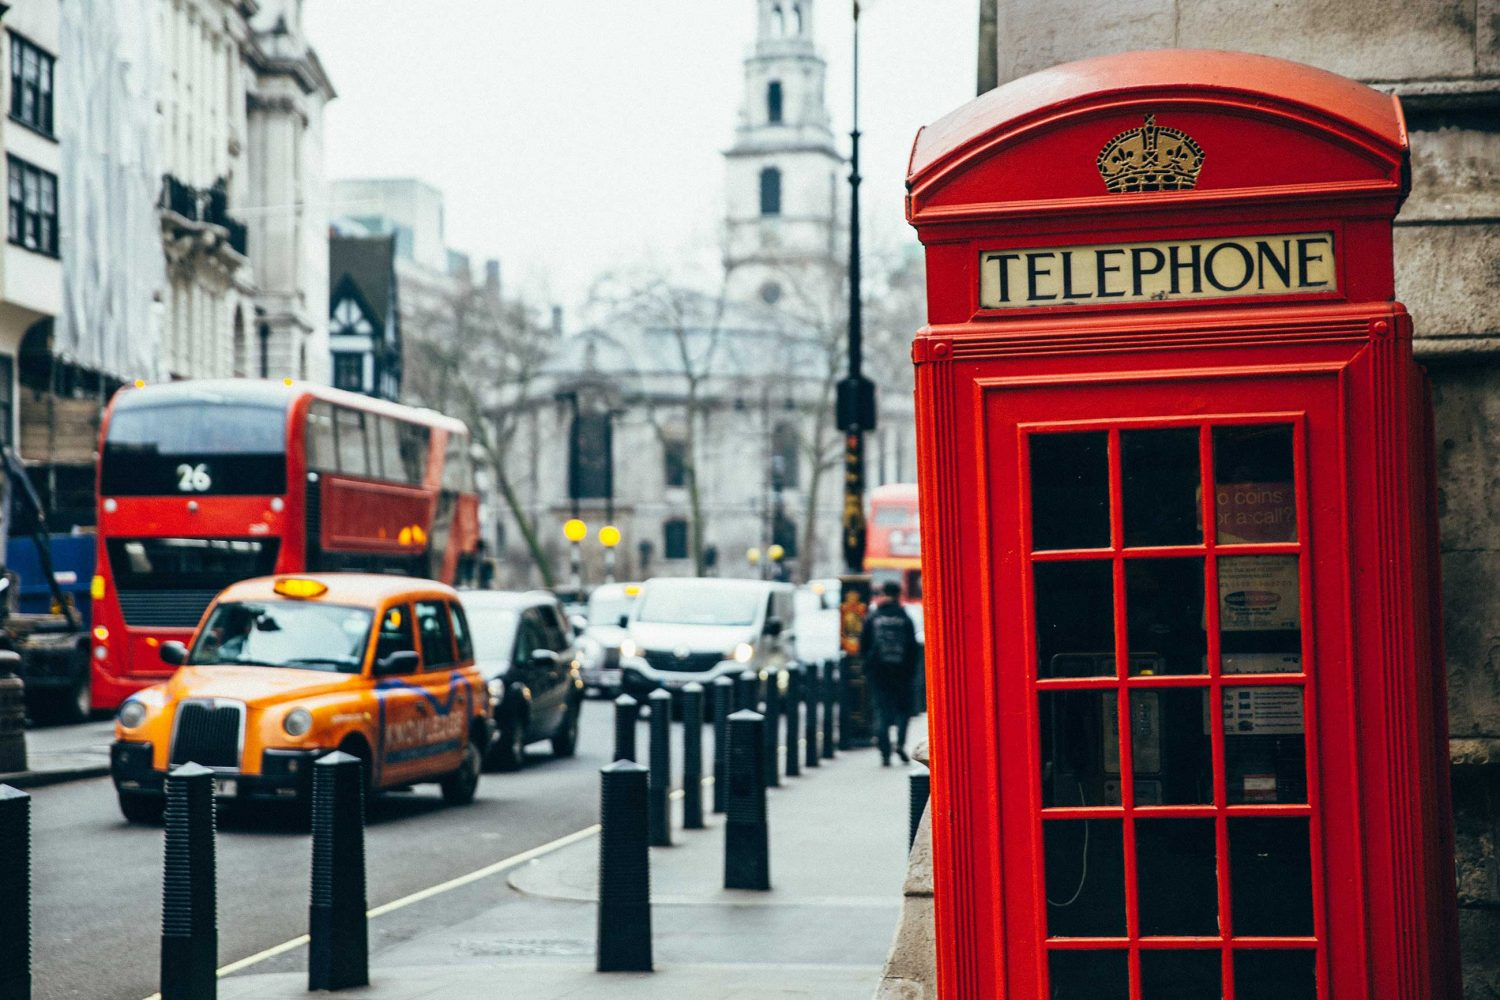 6 Day London Pass with Travel Card - A red London telephone box